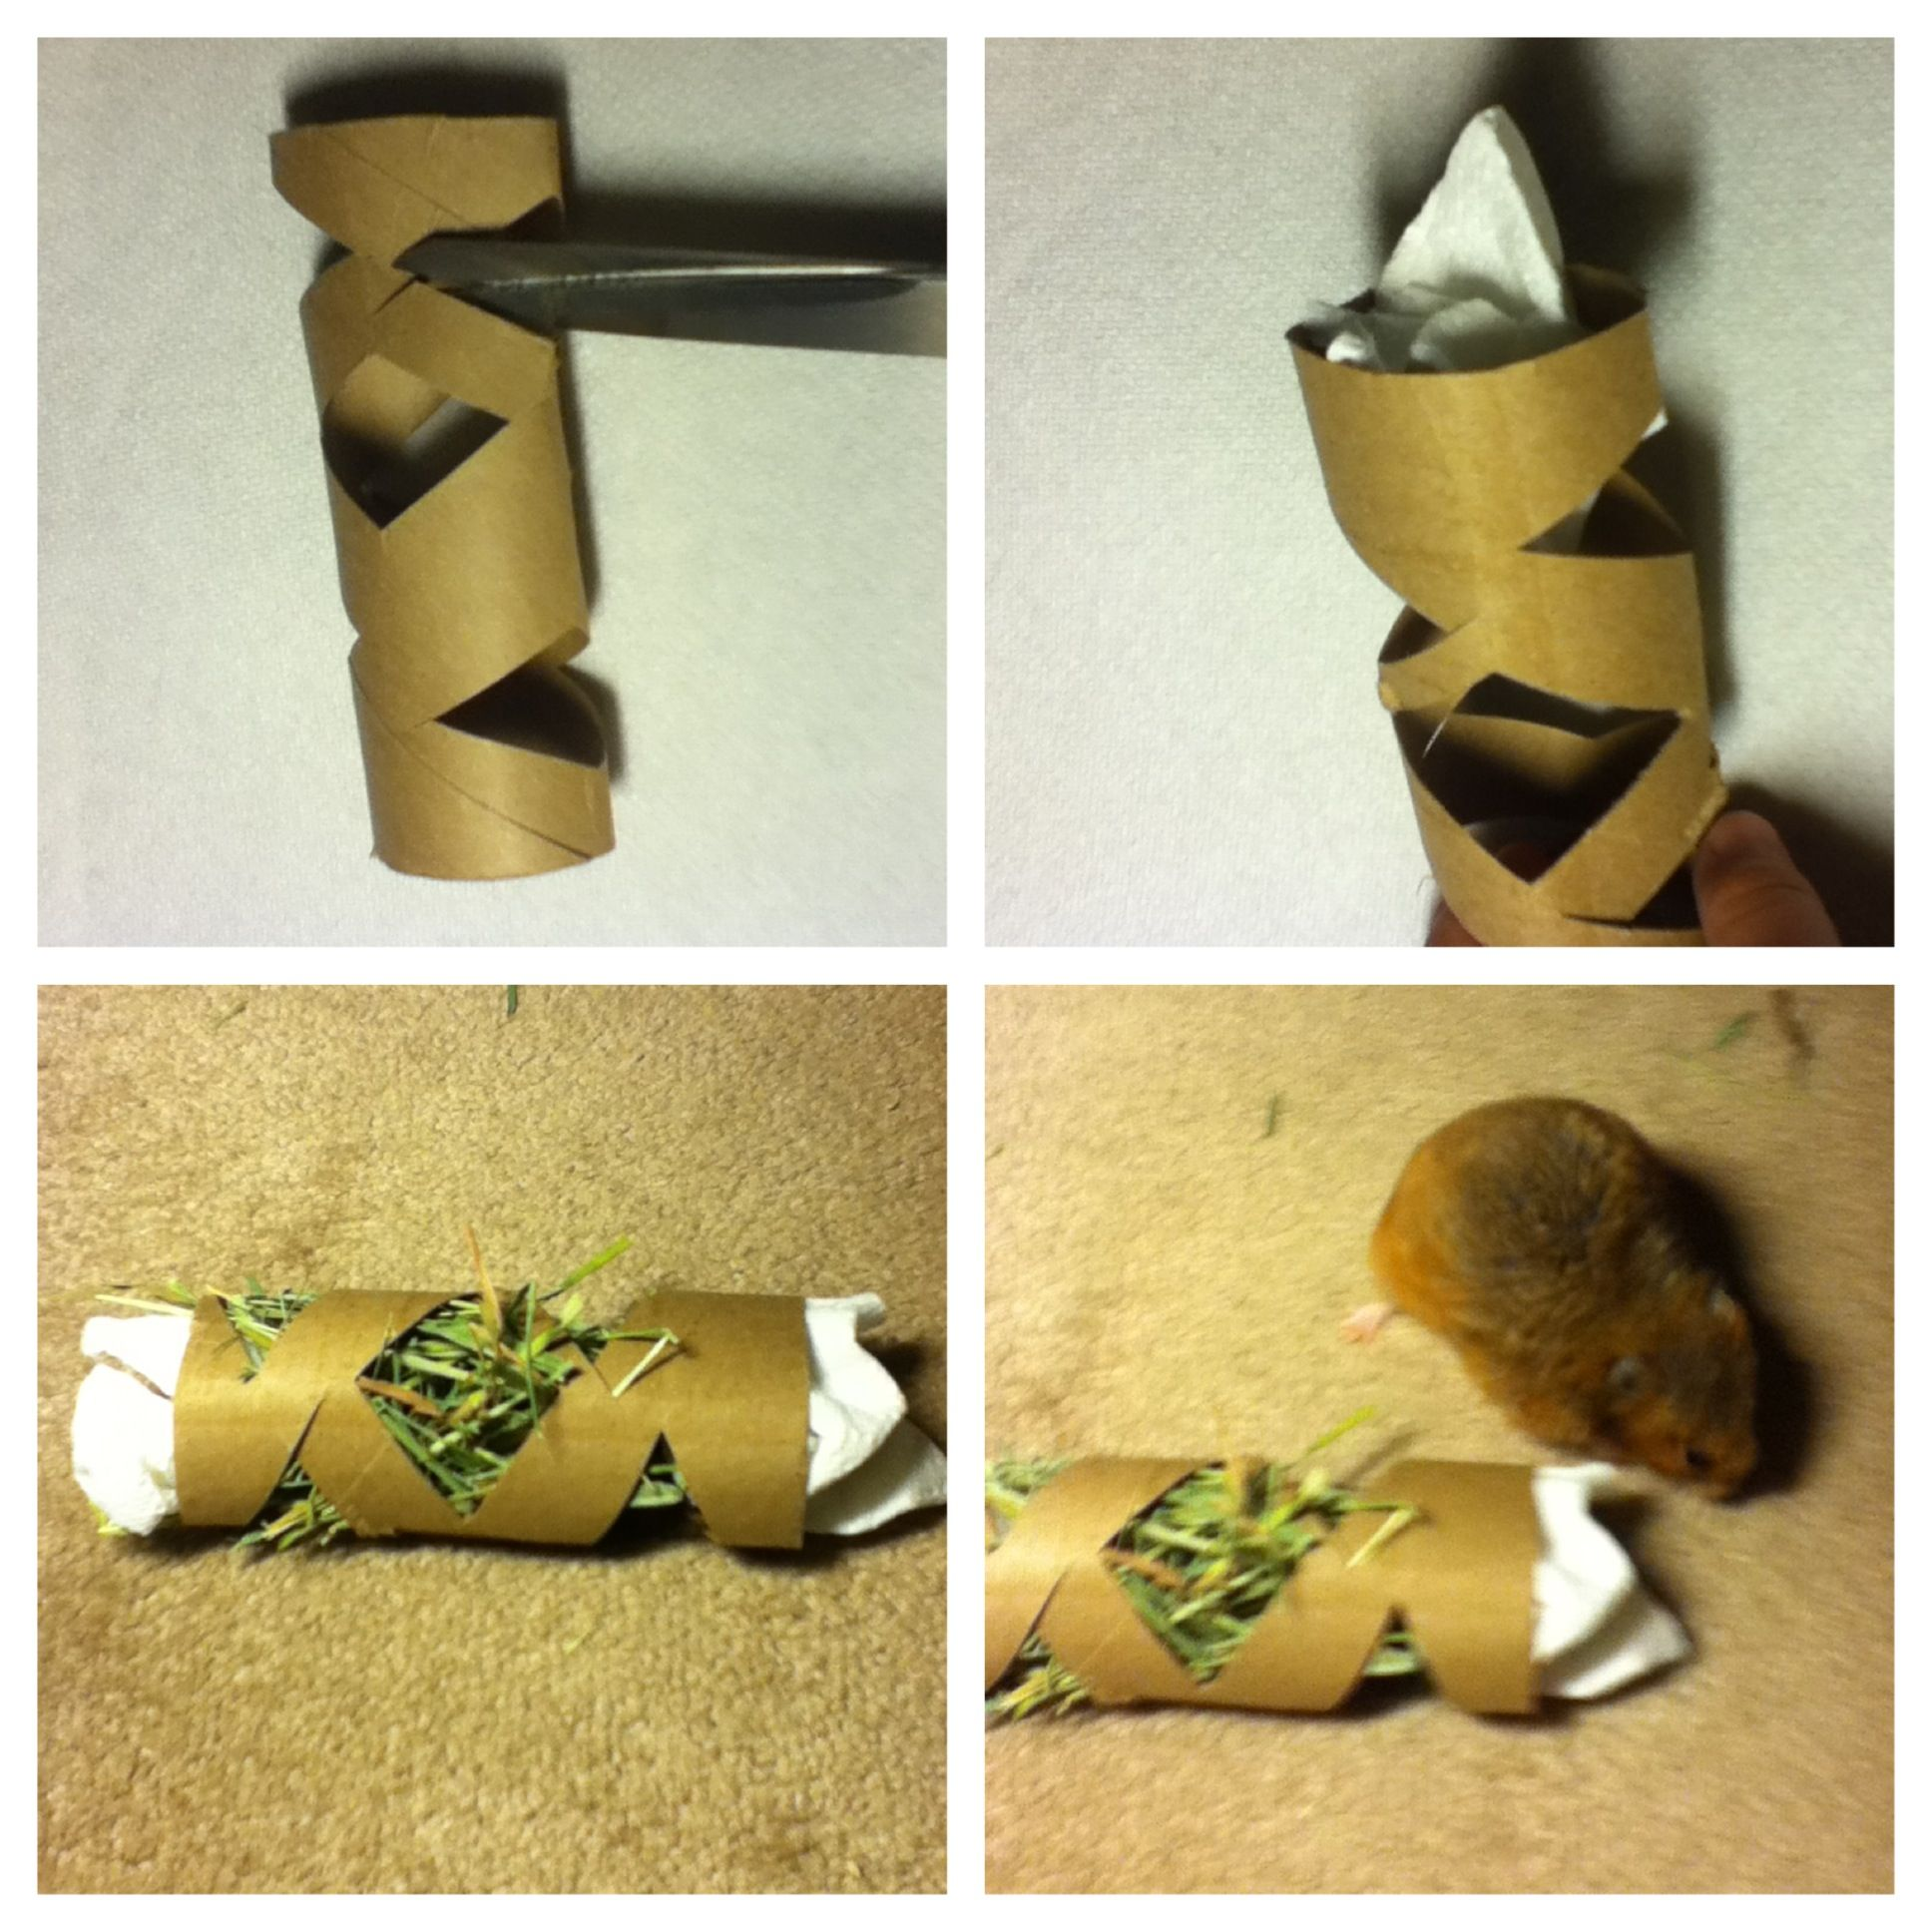 How to make a easy hamster toy you will need a toilet